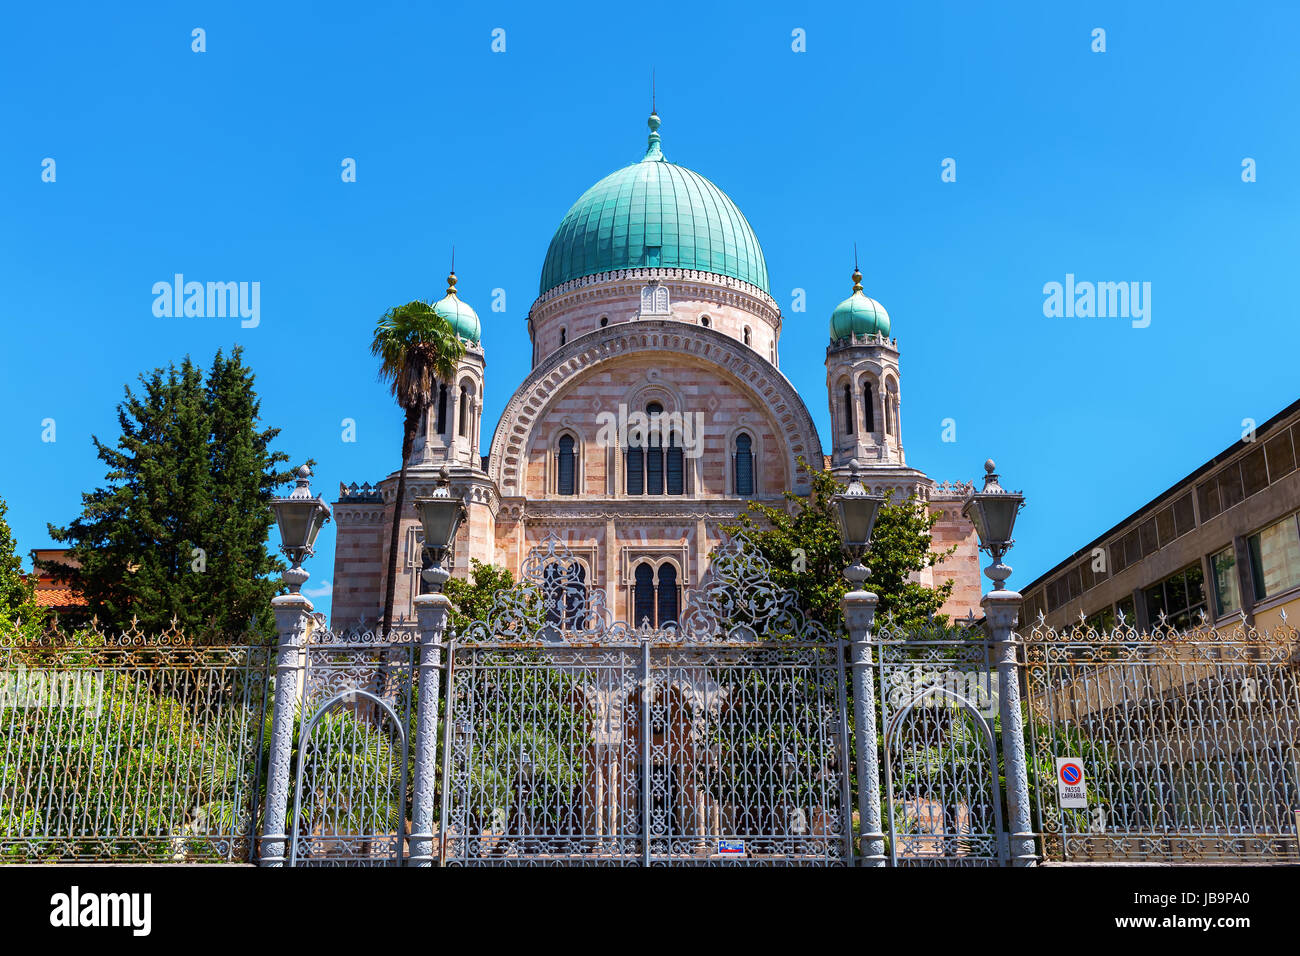 picture of the Great Synagogue in Florence, Italy Stock Photo